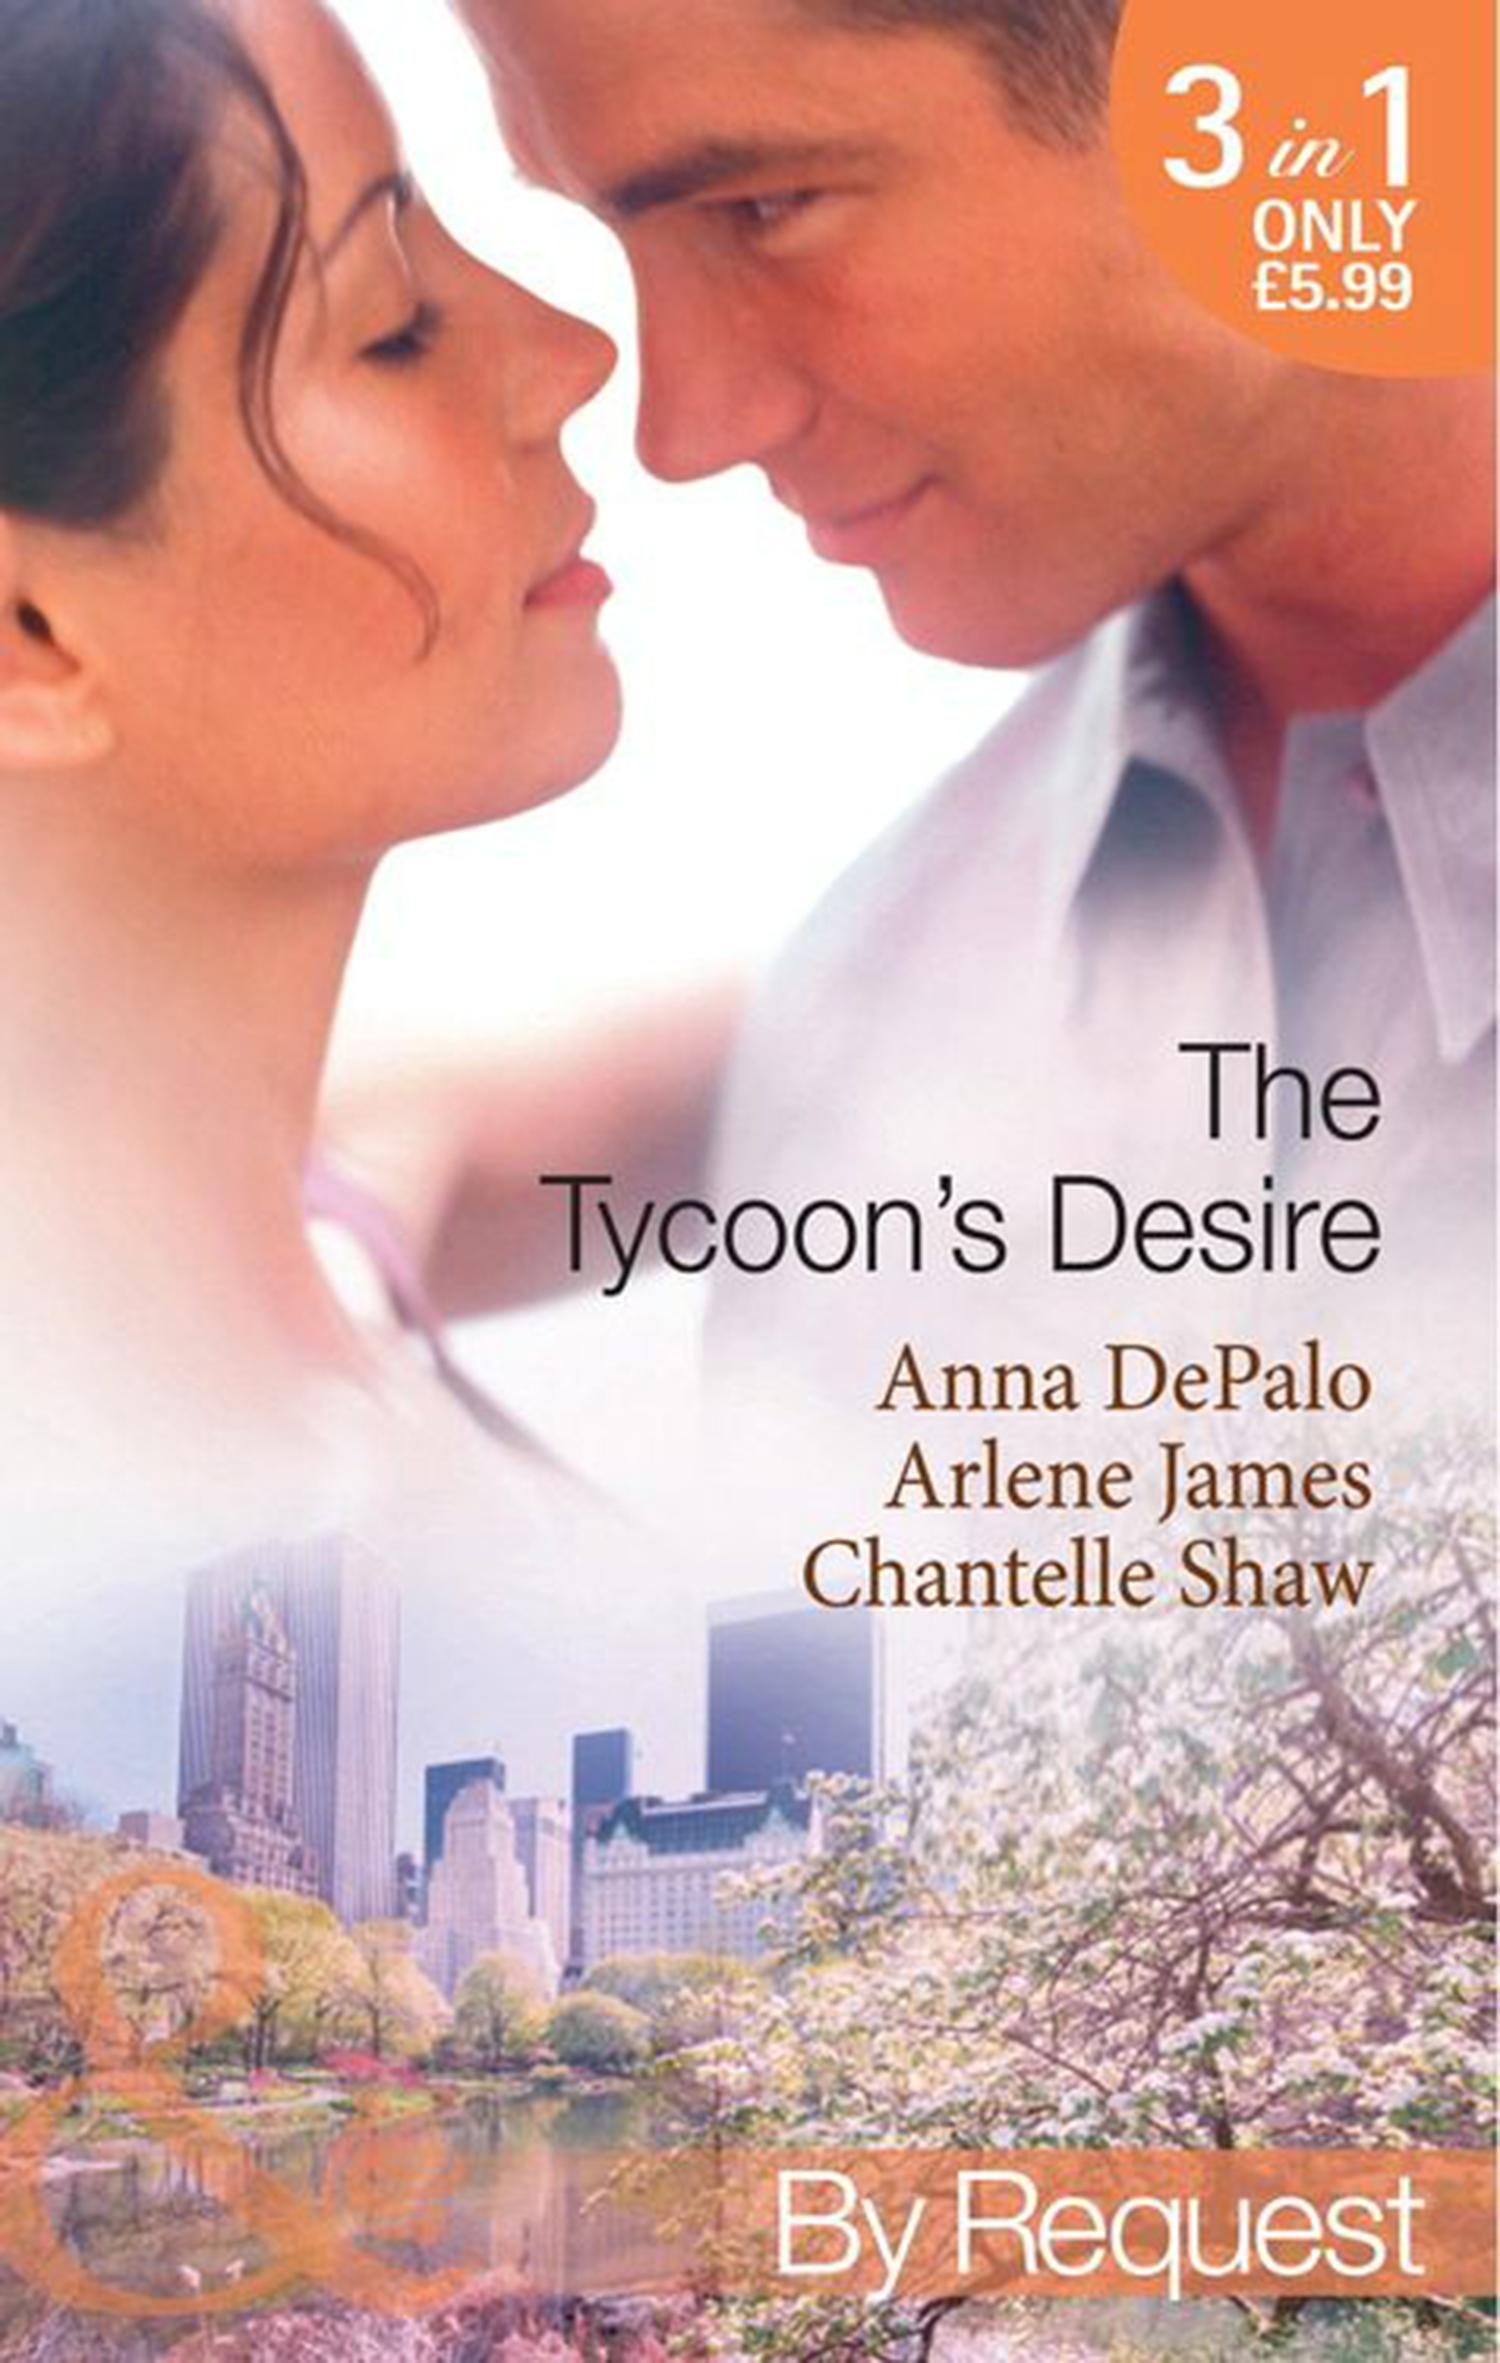 The Tycoon's Desire (Mills & Boon by Request) by Anna DePalo, ISBN: 9781408900758